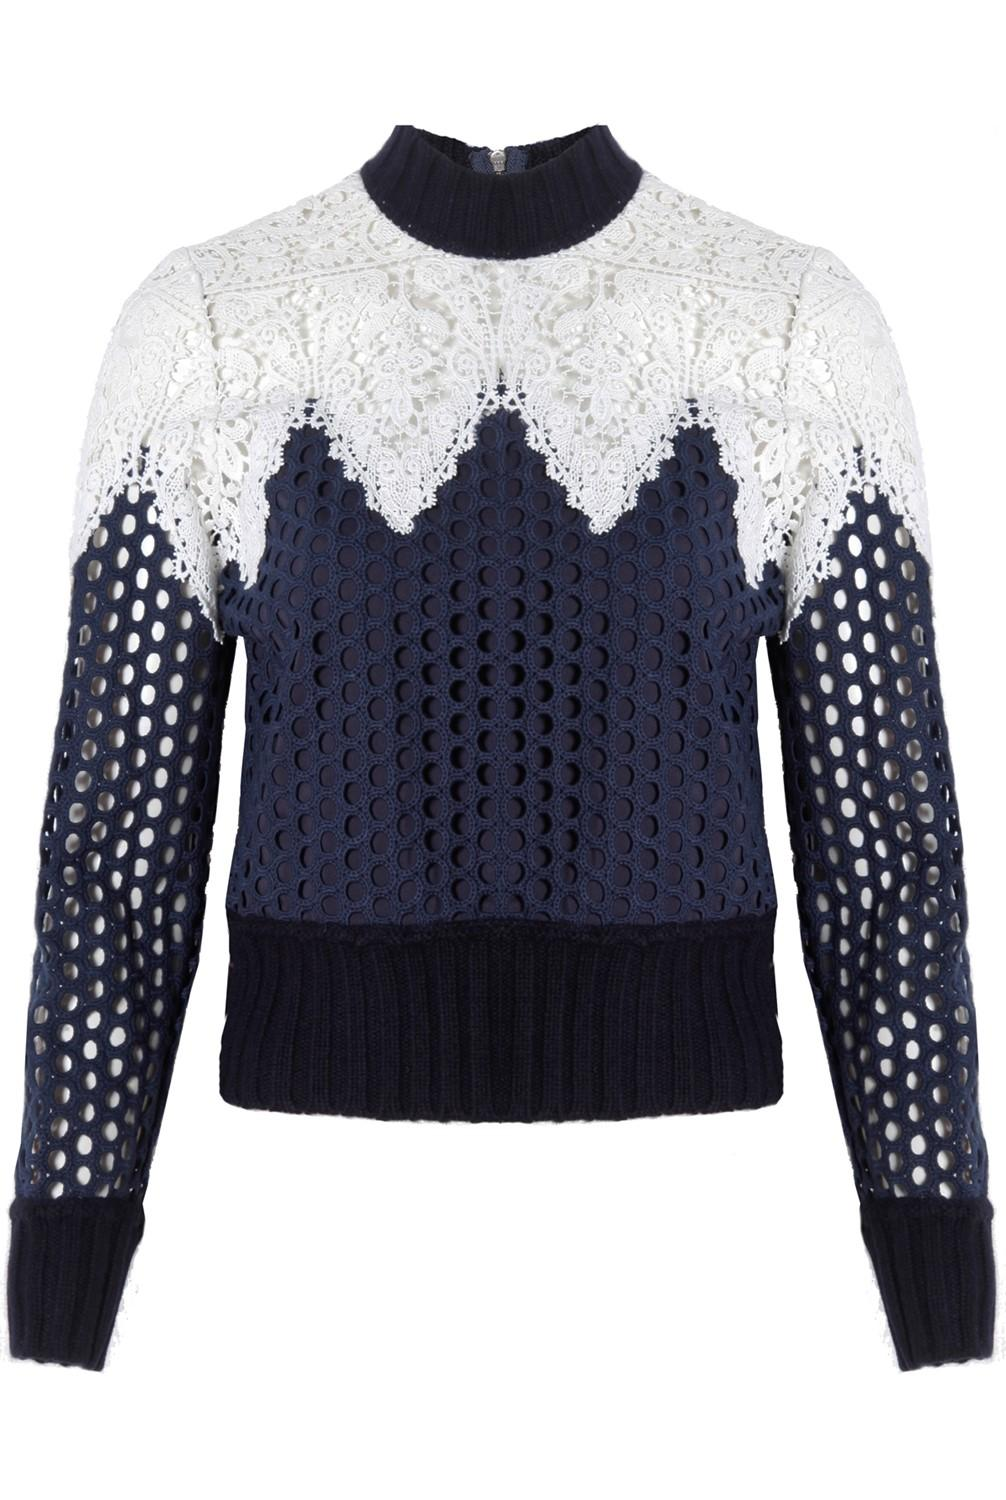 Sea Woman Corded Lace-paneled Brushed Cable-knit Sweater Midnight Blue Size M Sea New York Manchester Cheap Online Outlet Where To Buy Cheap 2018 Unisex Buy Cheap Perfect TdHkjTQk